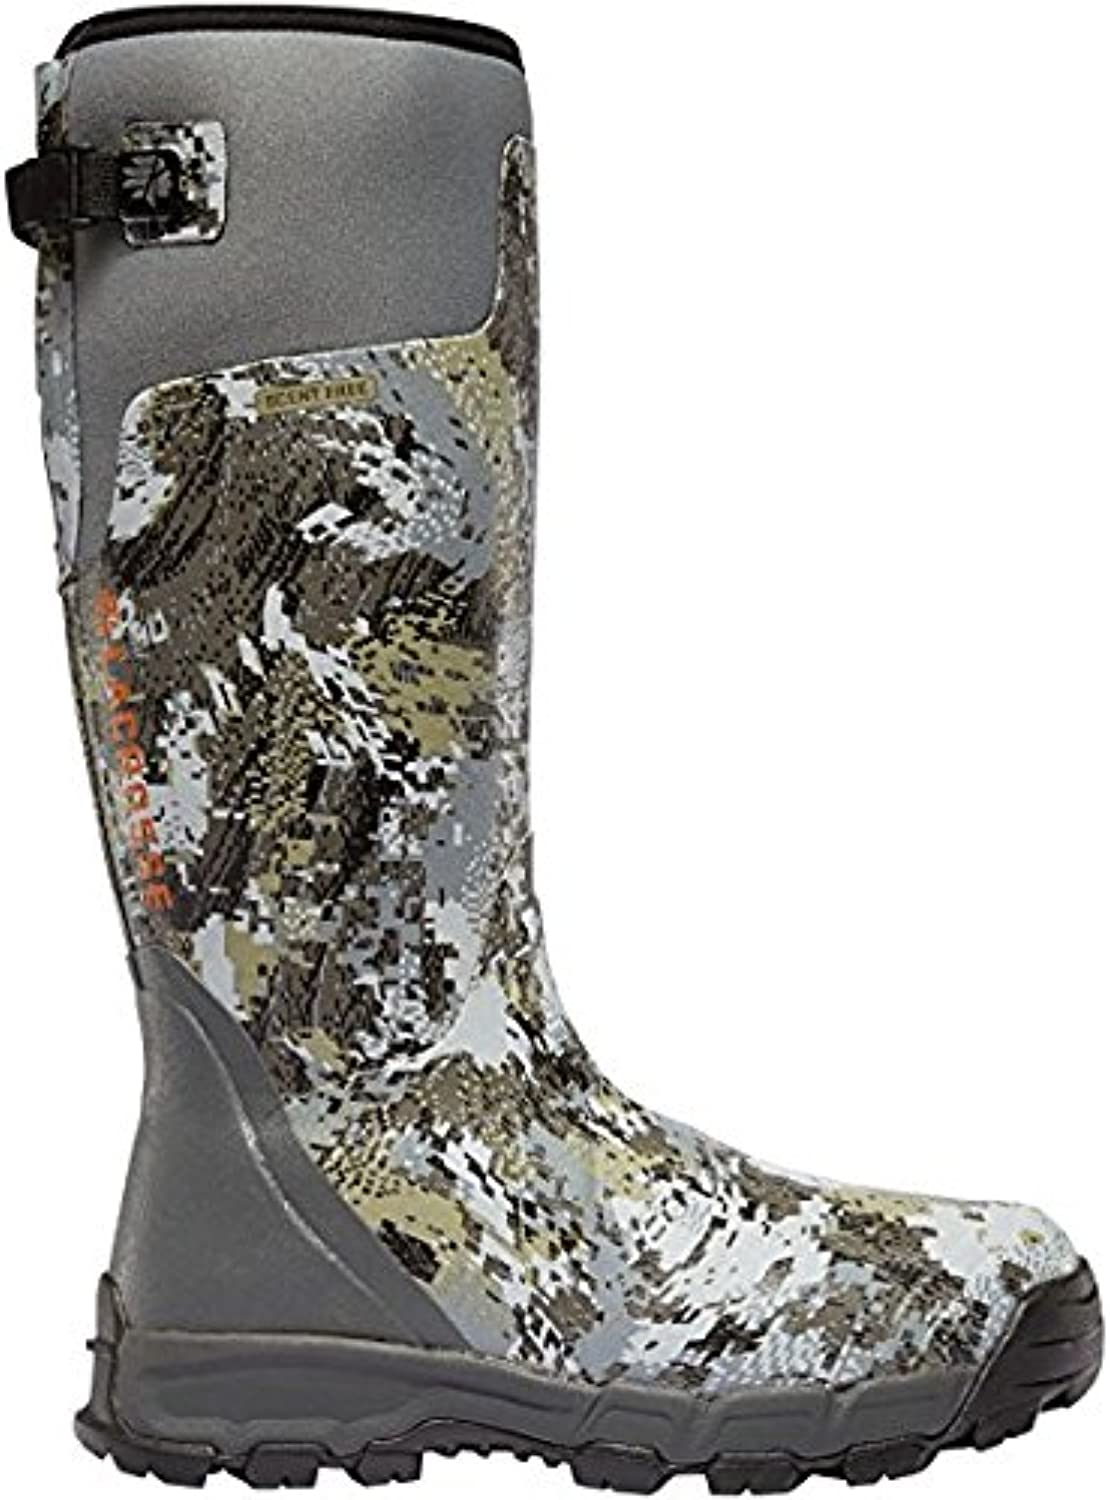 LACROSSE Alphaburly Pro 18  Height Optifade Elevated II 800G (376035) Waterproof   Insulated Modern Comfortable Hunting Combat Boot Brown